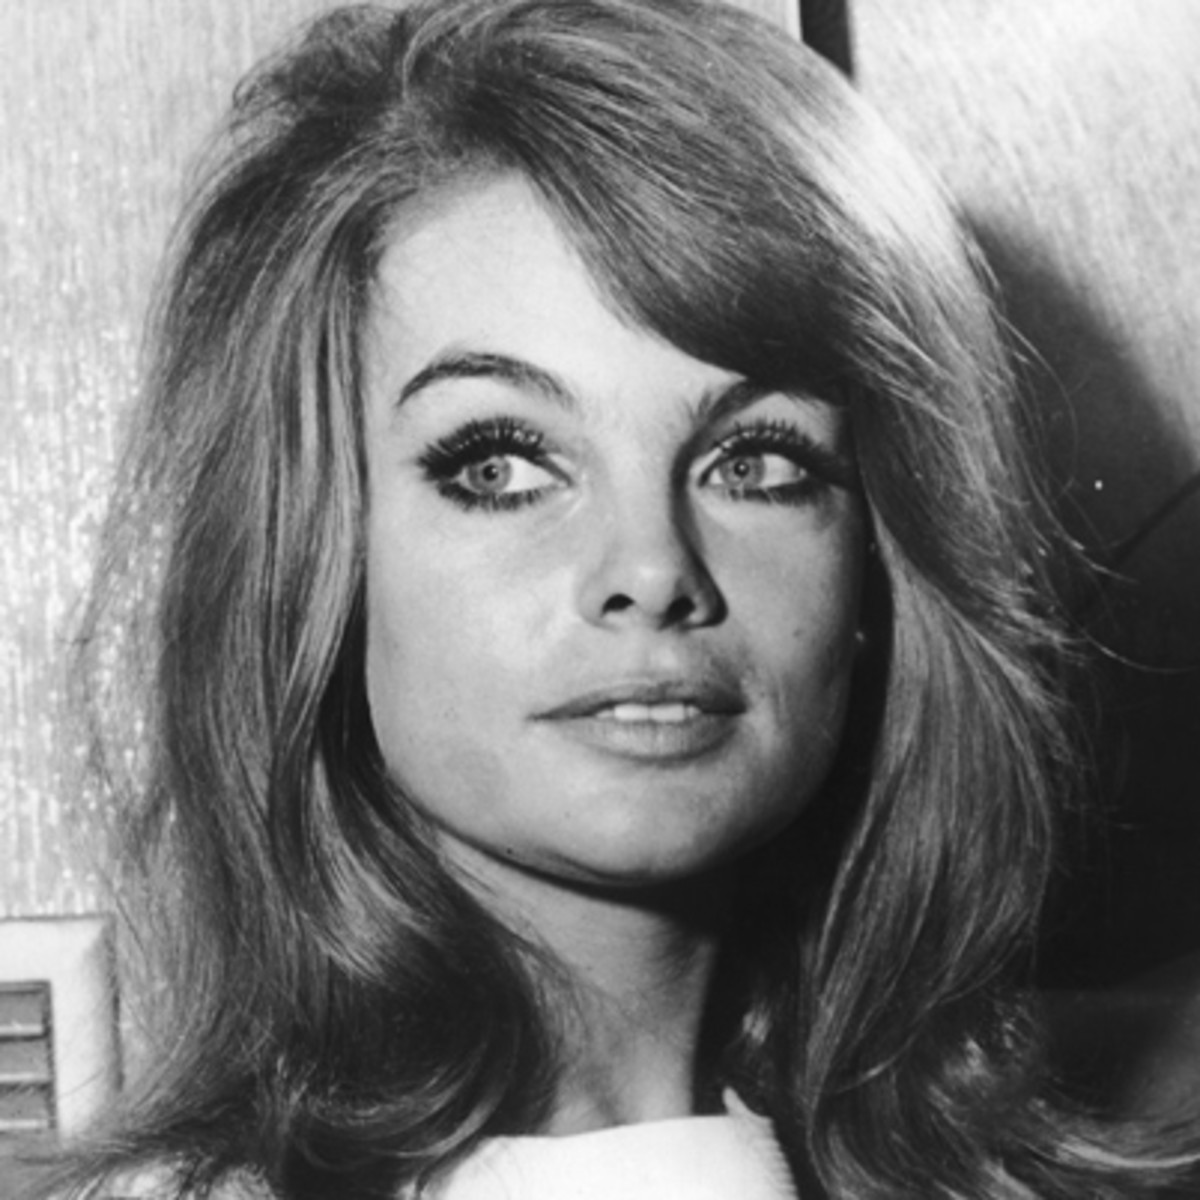 Jean Shrimpton nude (65 foto and video), Ass, Sideboobs, Boobs, underwear 2020